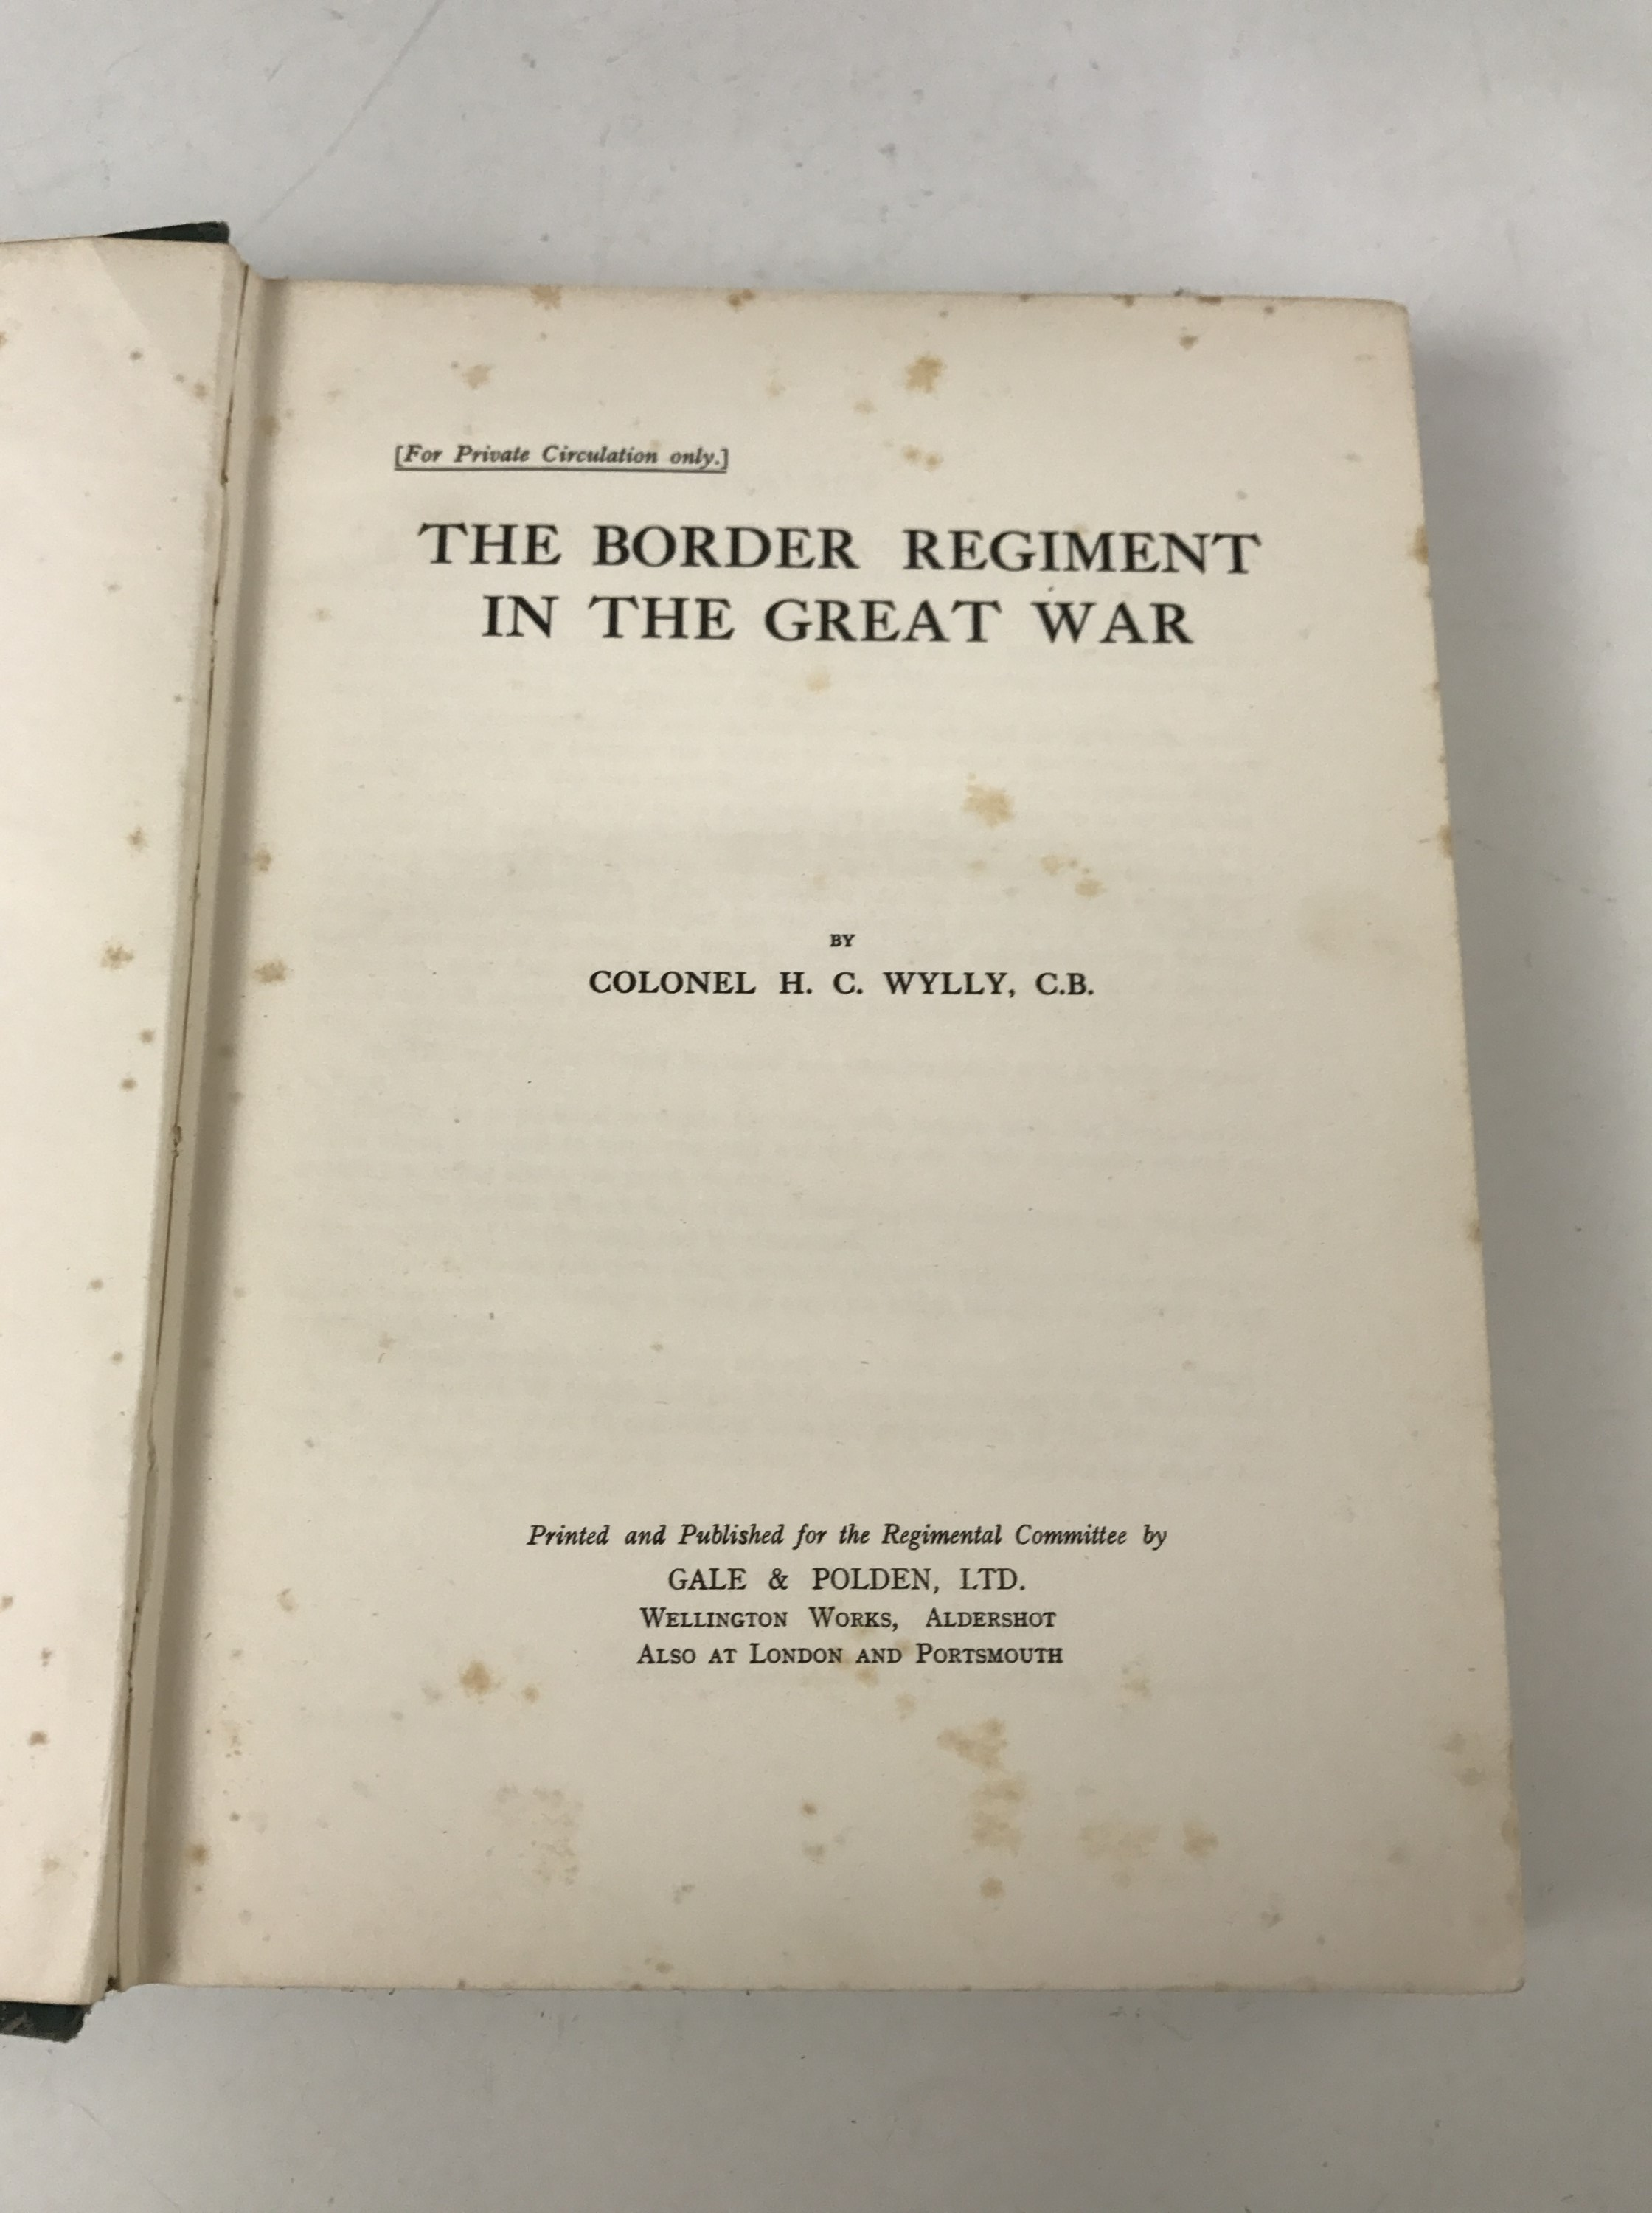 Lot 34 - Colonel H. C. Wylly, C.B, The Border Regiment in the Great War, Gale and Polden, Ltd, bound in green